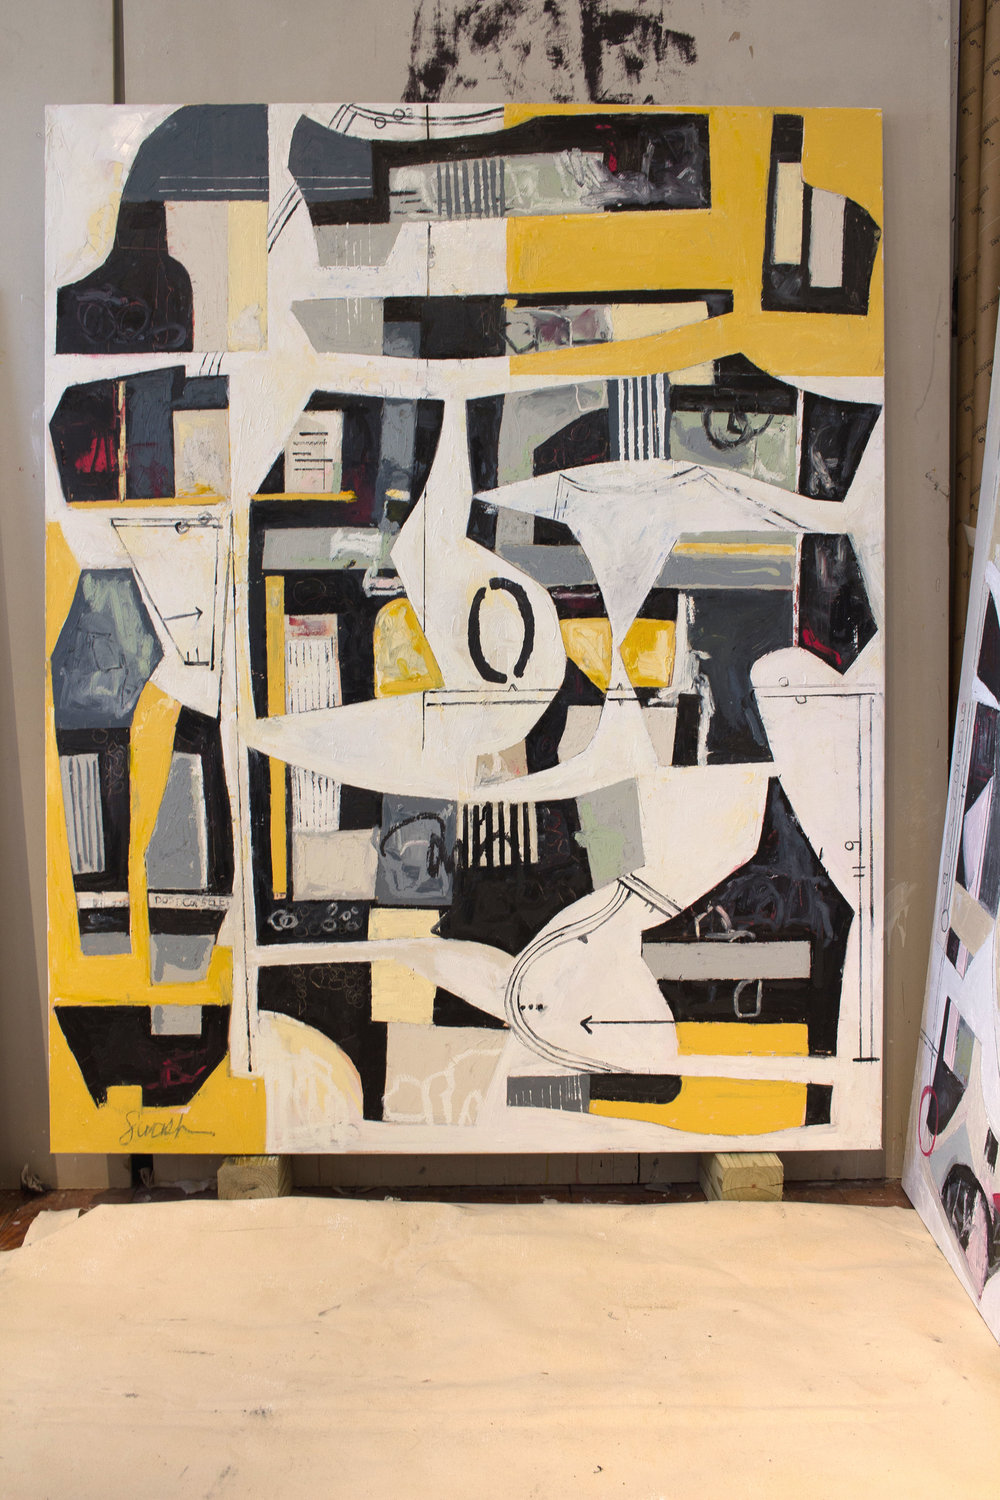 Deconstructed Yellow - 4' x 5' Oil on canvas.This piece has been sold